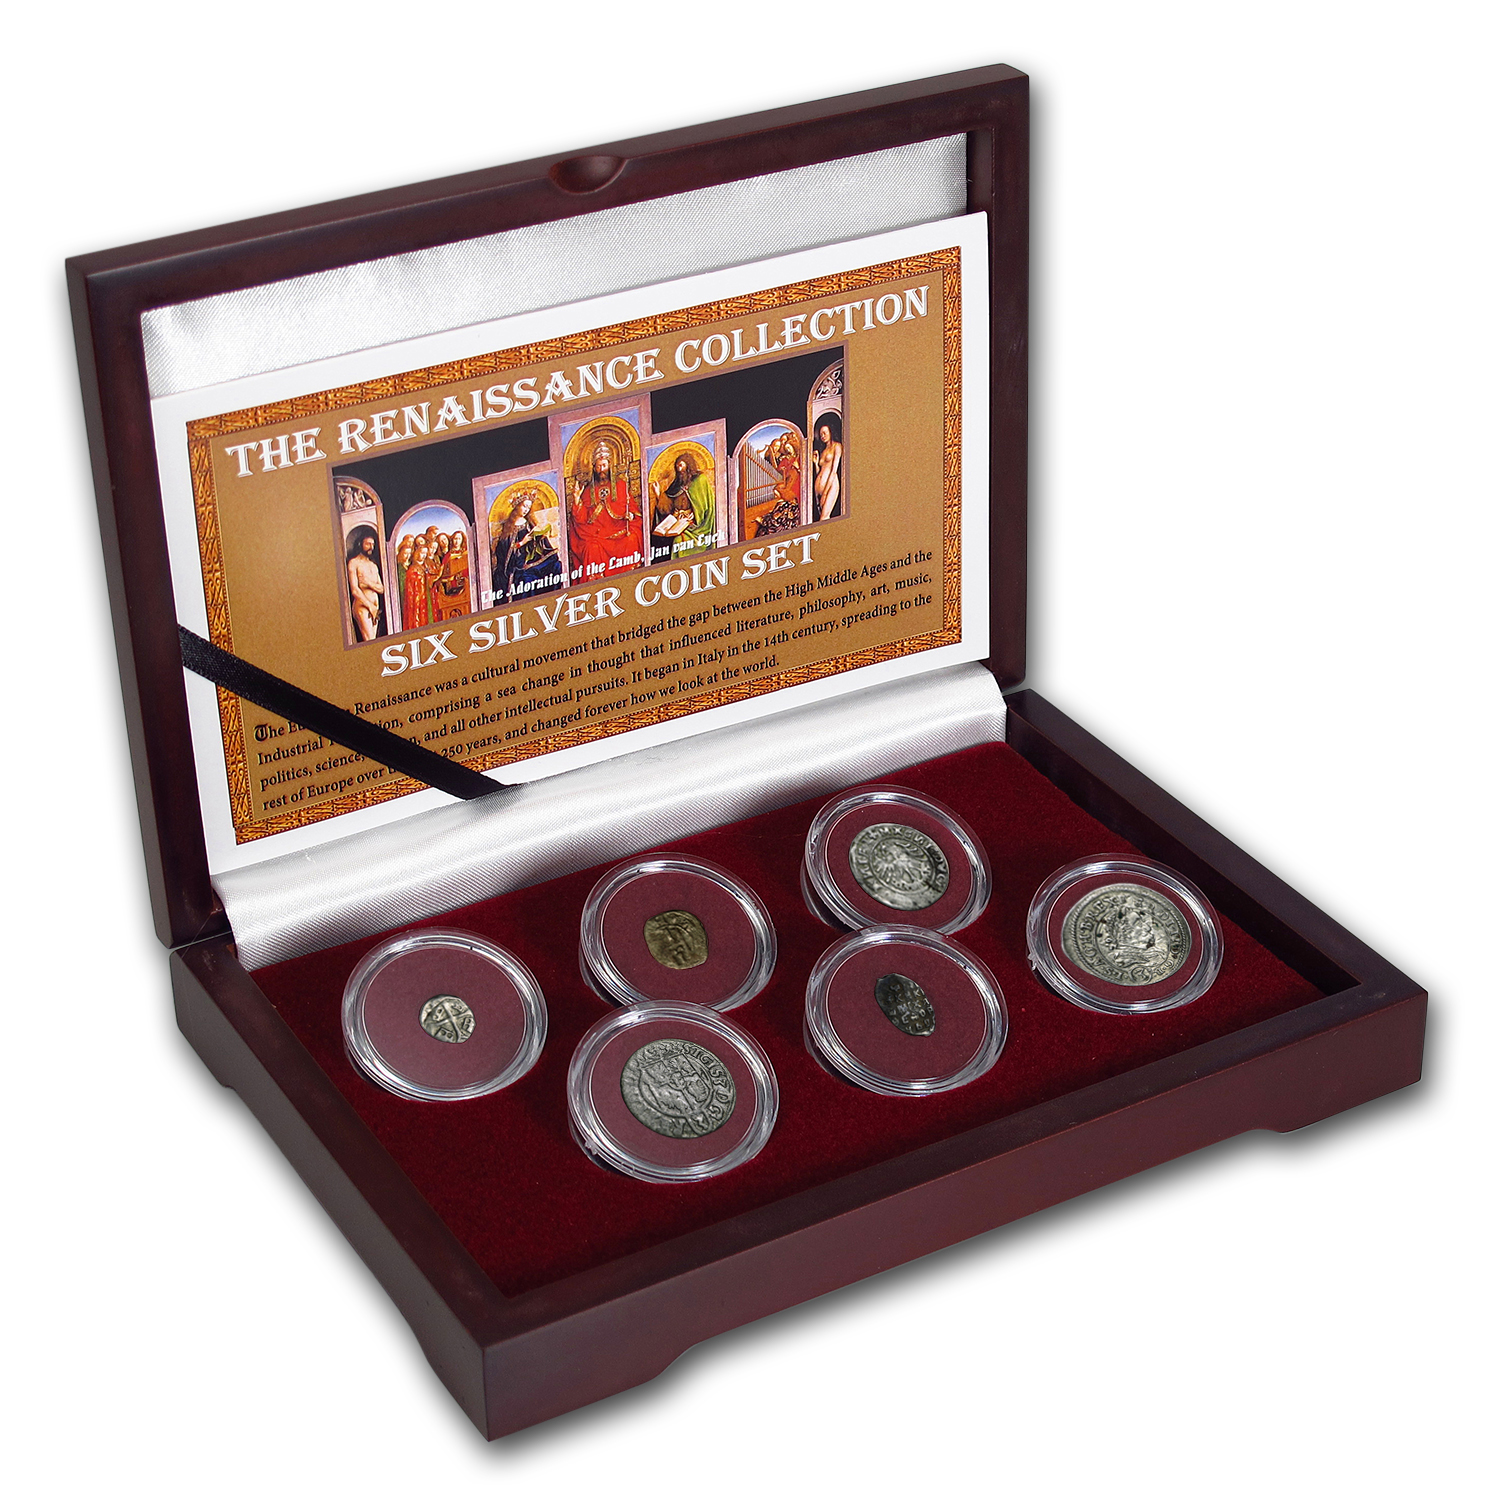 The Renaissance Collection 6-Coin Silver Set